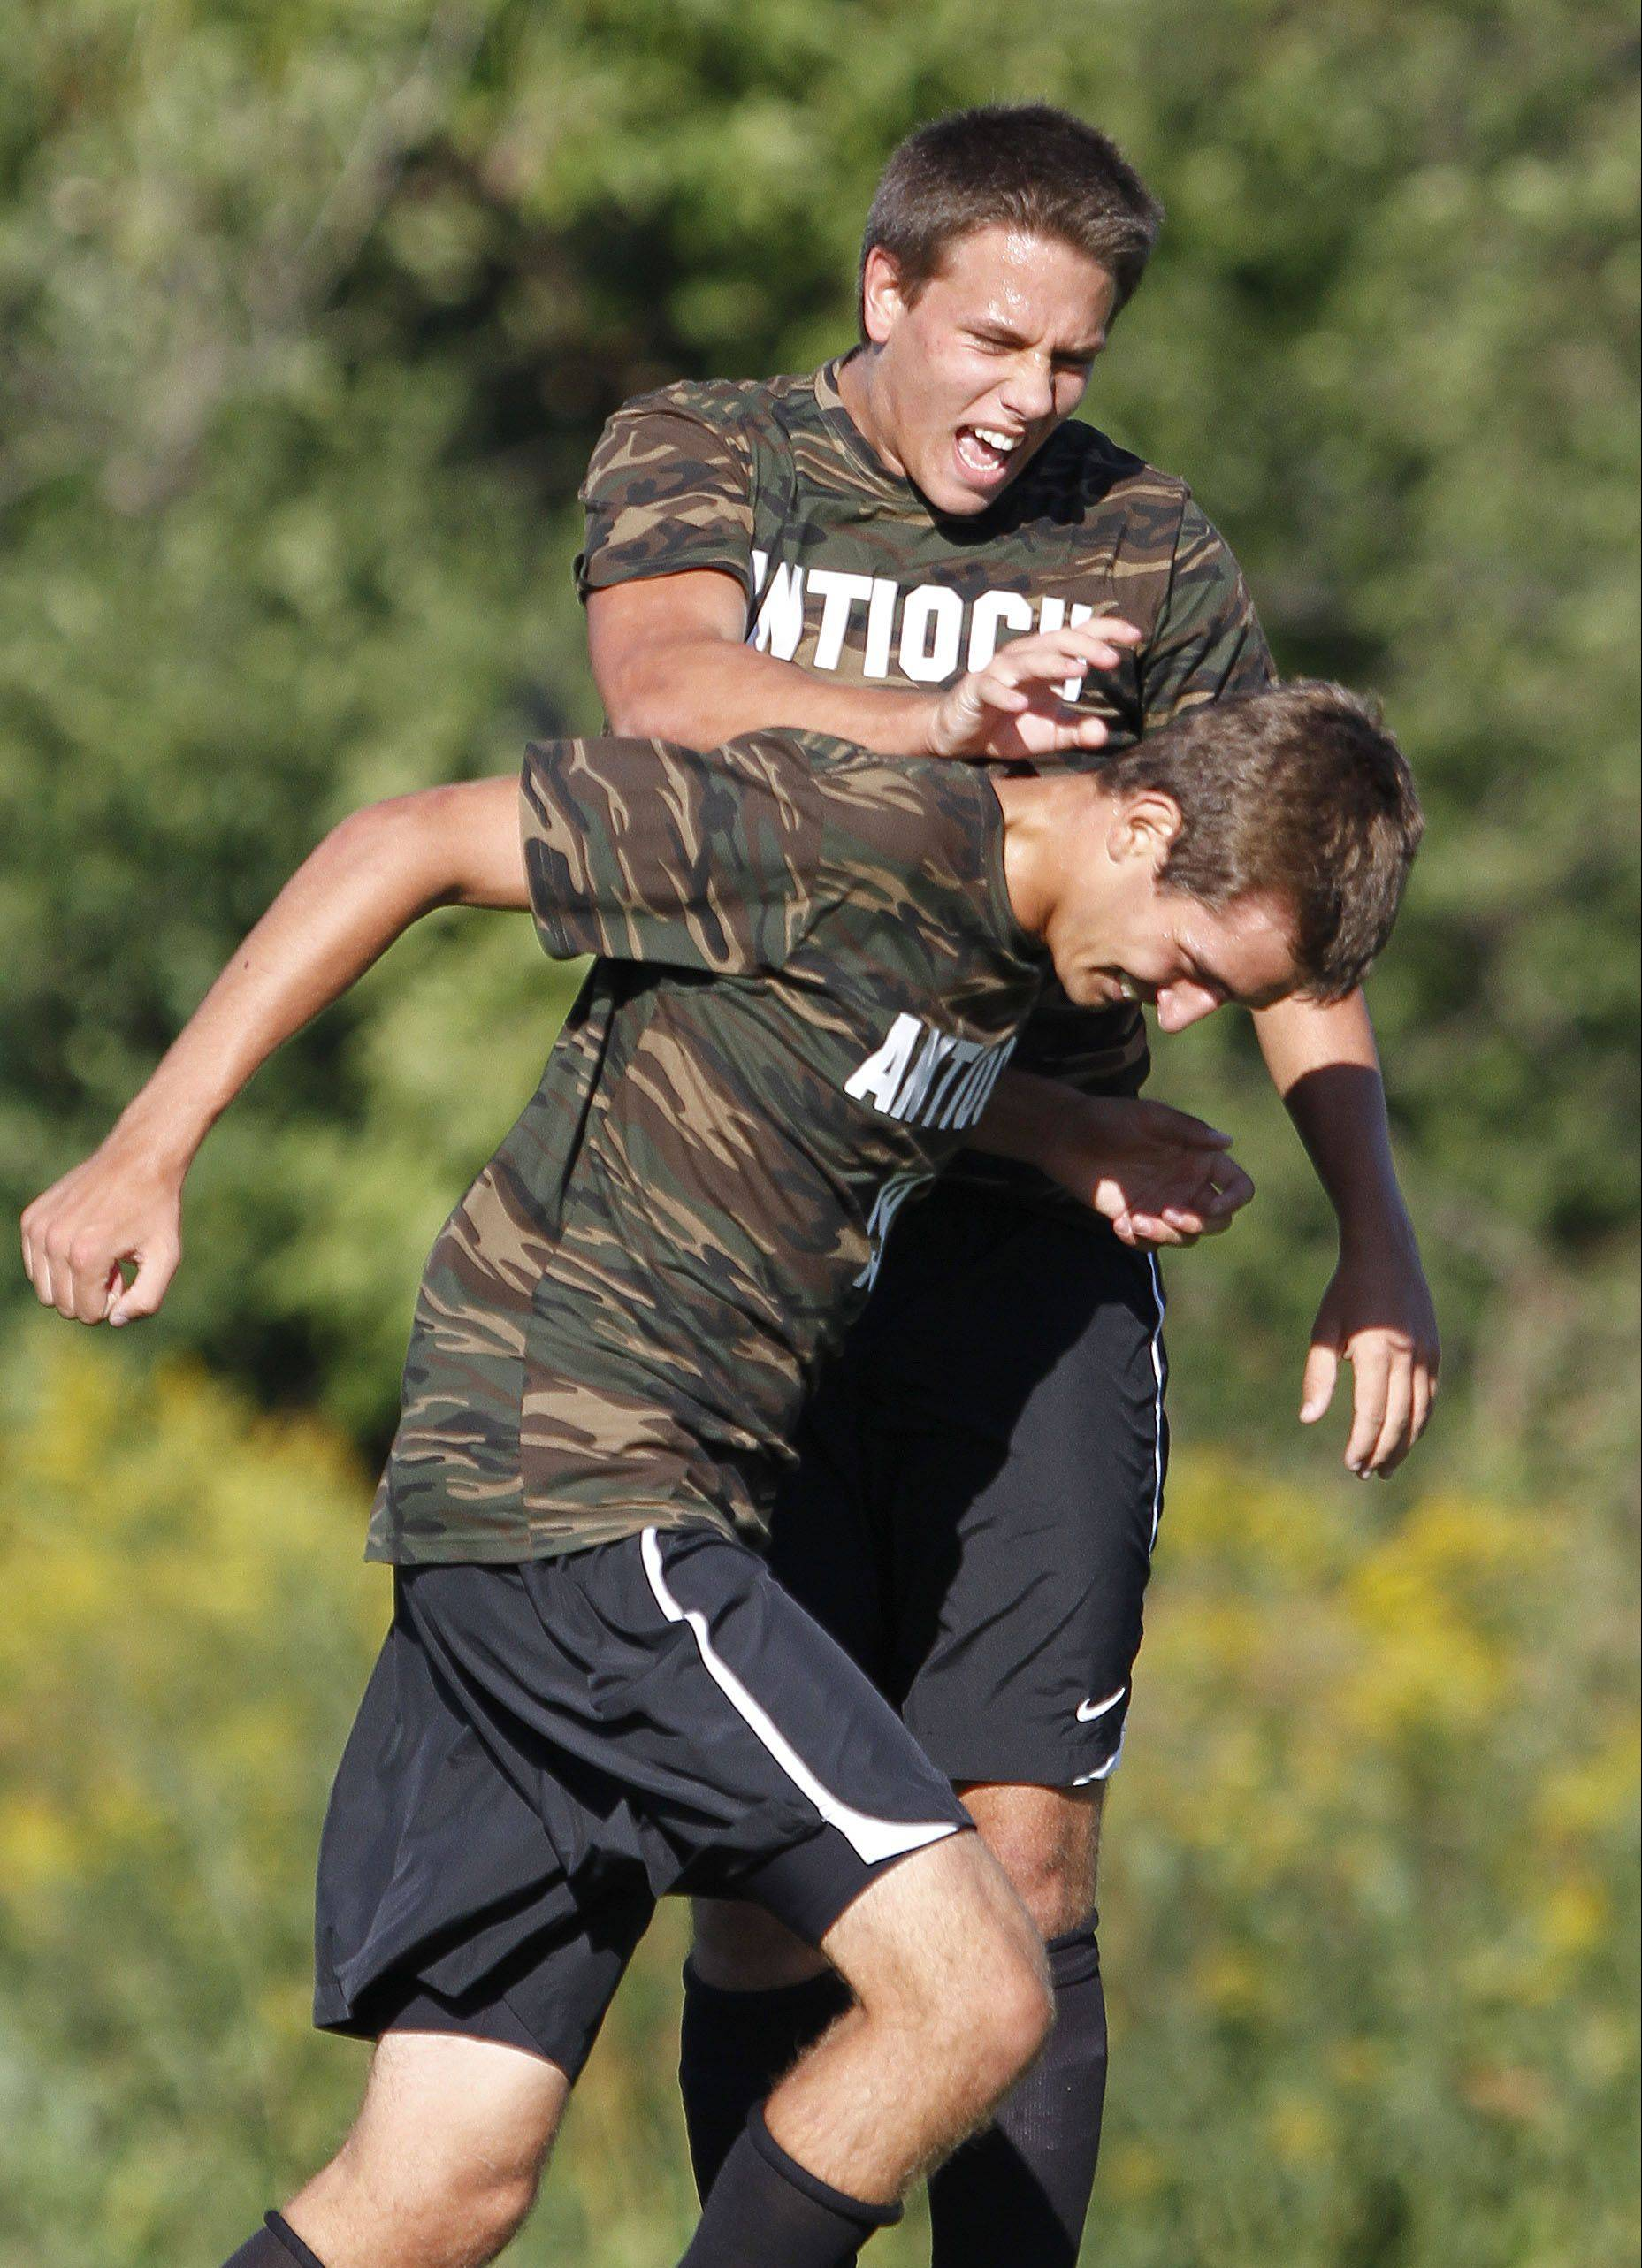 Antioch's Erik VanTreeck, left, congratulates Nick Brito after he scored in the first half Tuesday at Lakes.